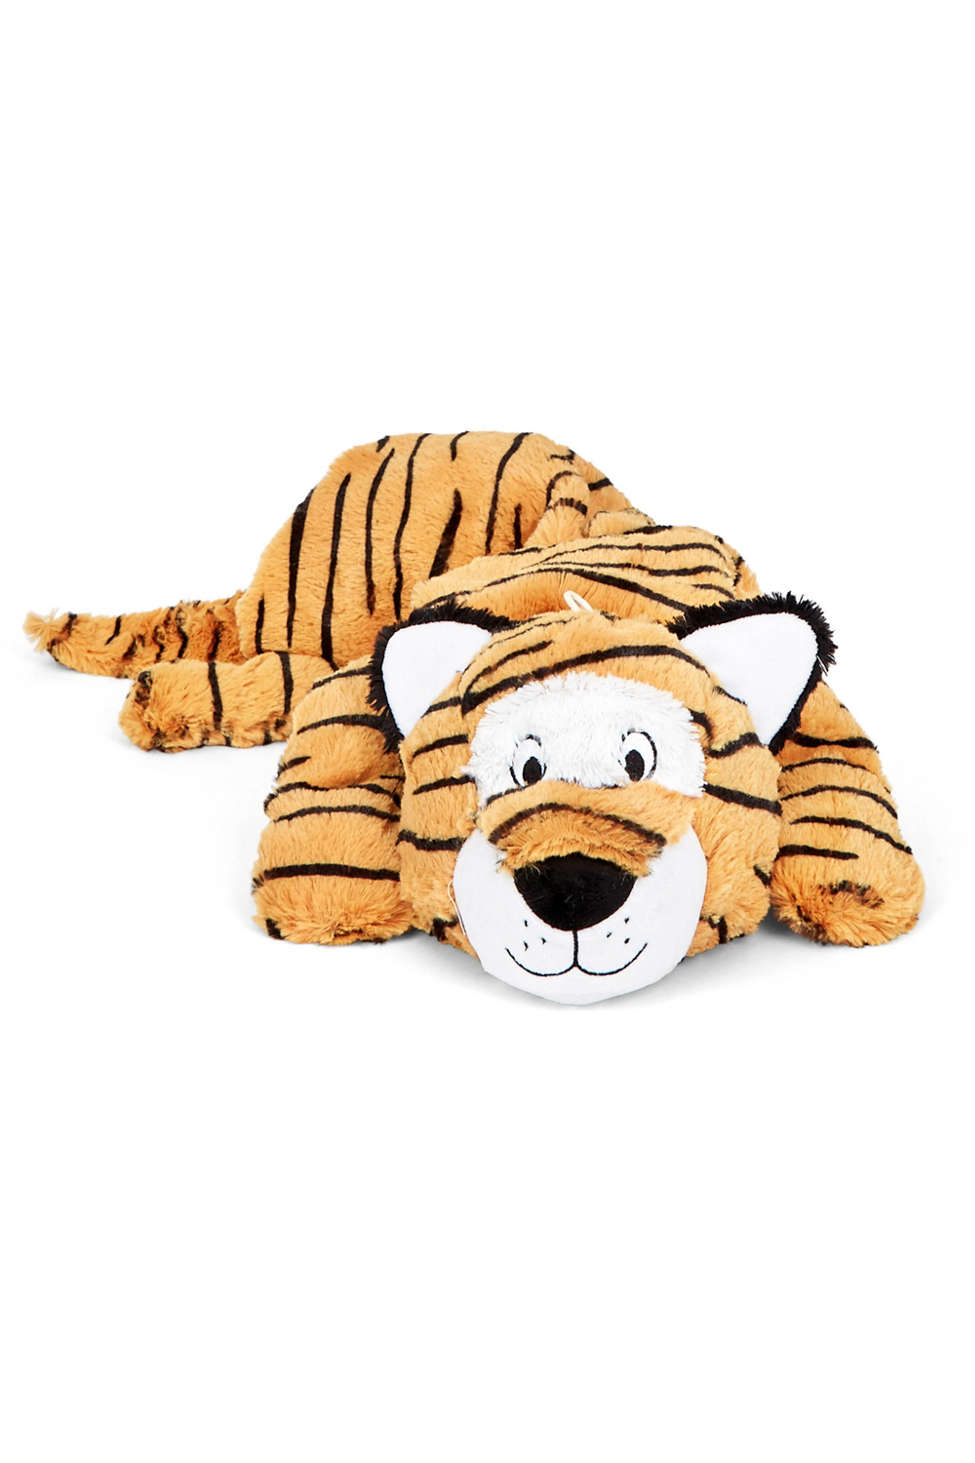 Slide View: 1: BARK Benji the Tiger Dog Toy